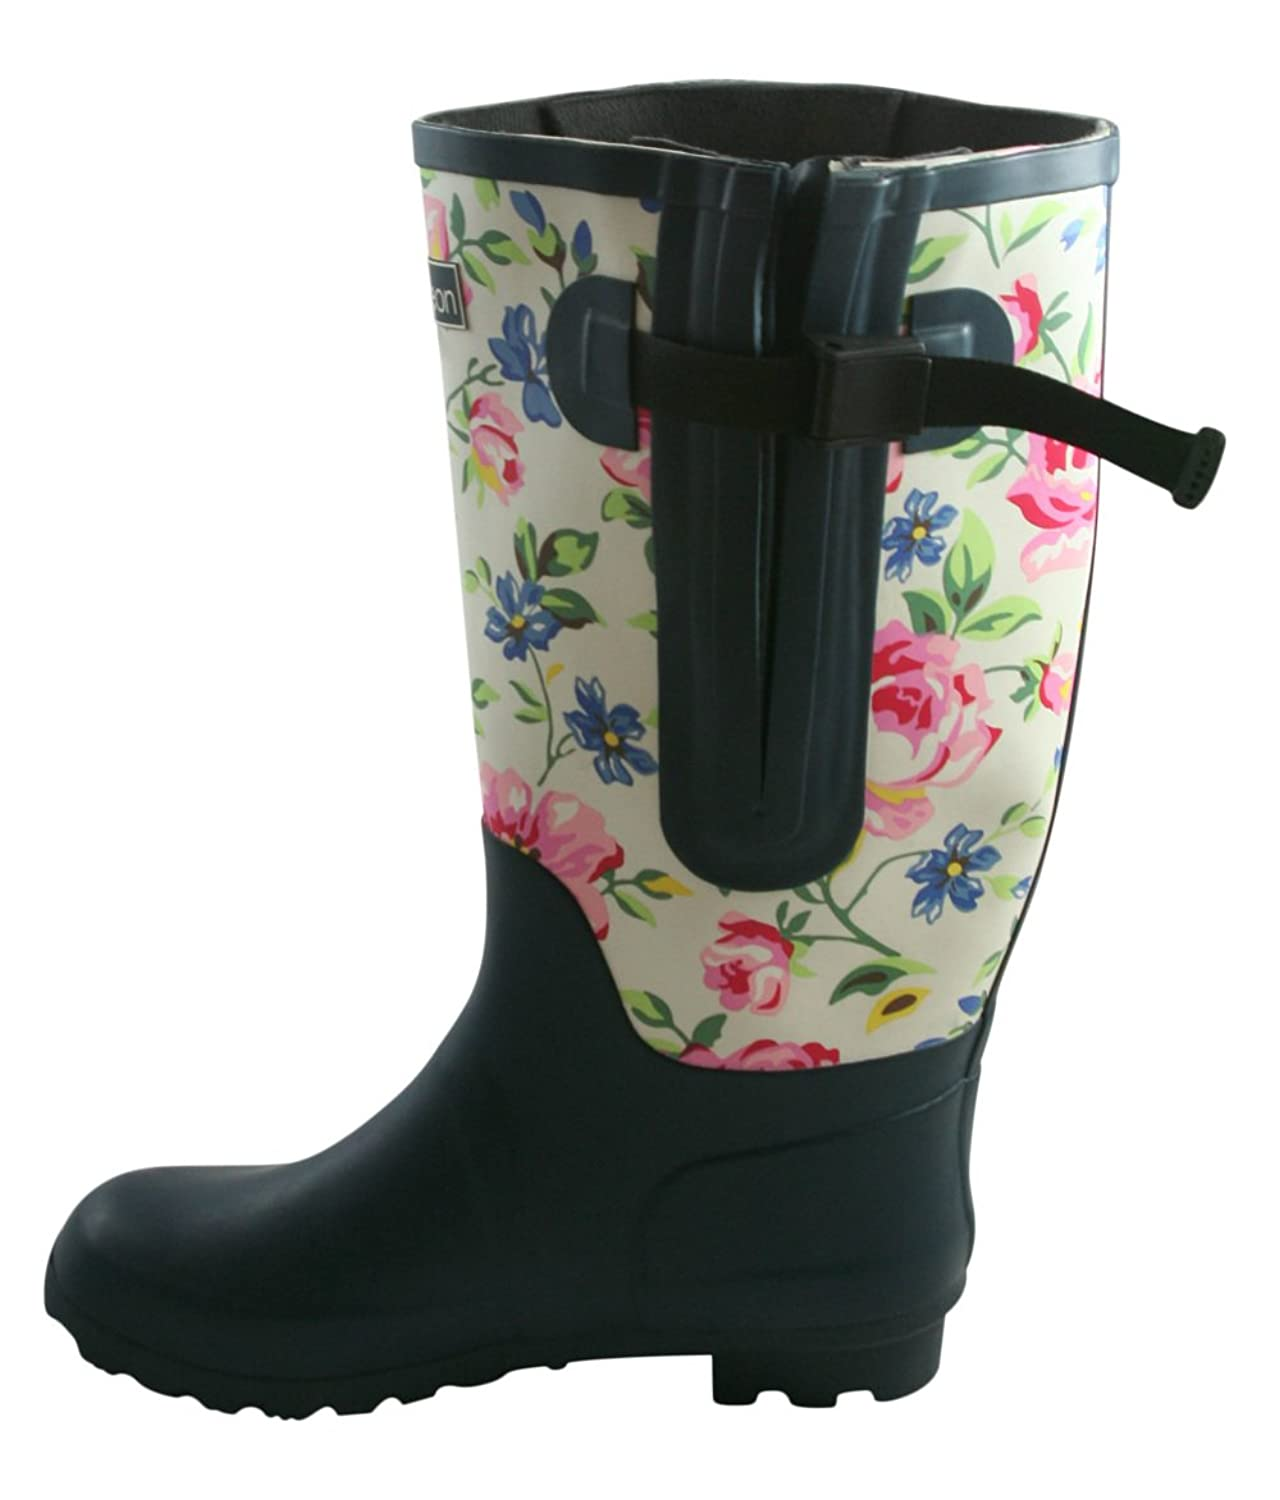 Extra Wide Fit Rain Boots - Double Gusset - 2 Tone Floral: Up to 21